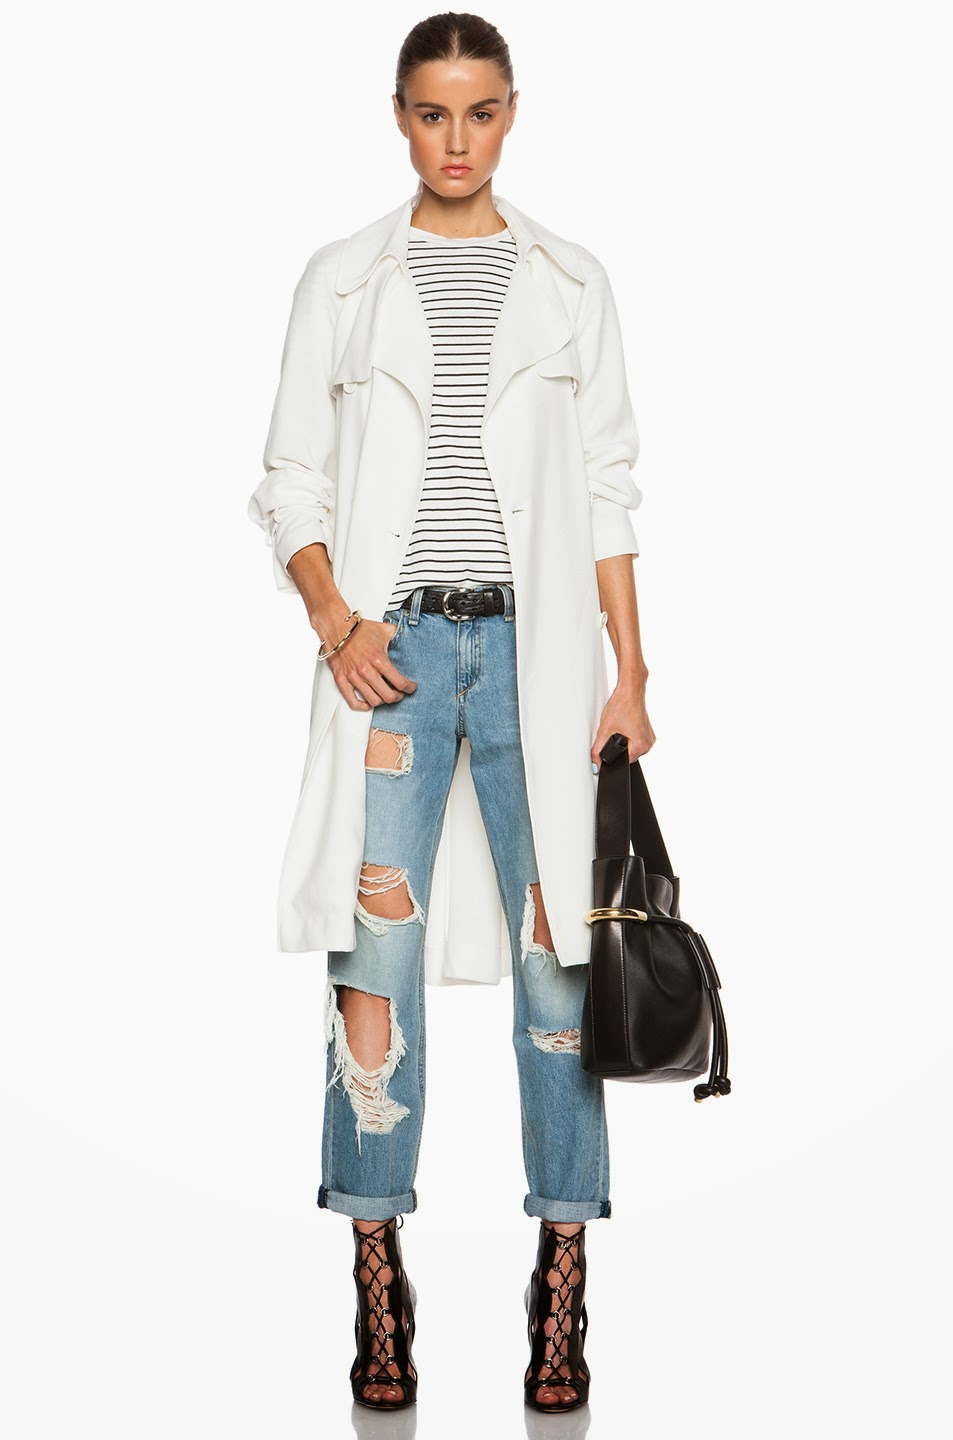 481300c55684 classic with an edge - bright white lightweight trench coat - striped tee - ripped  jeans